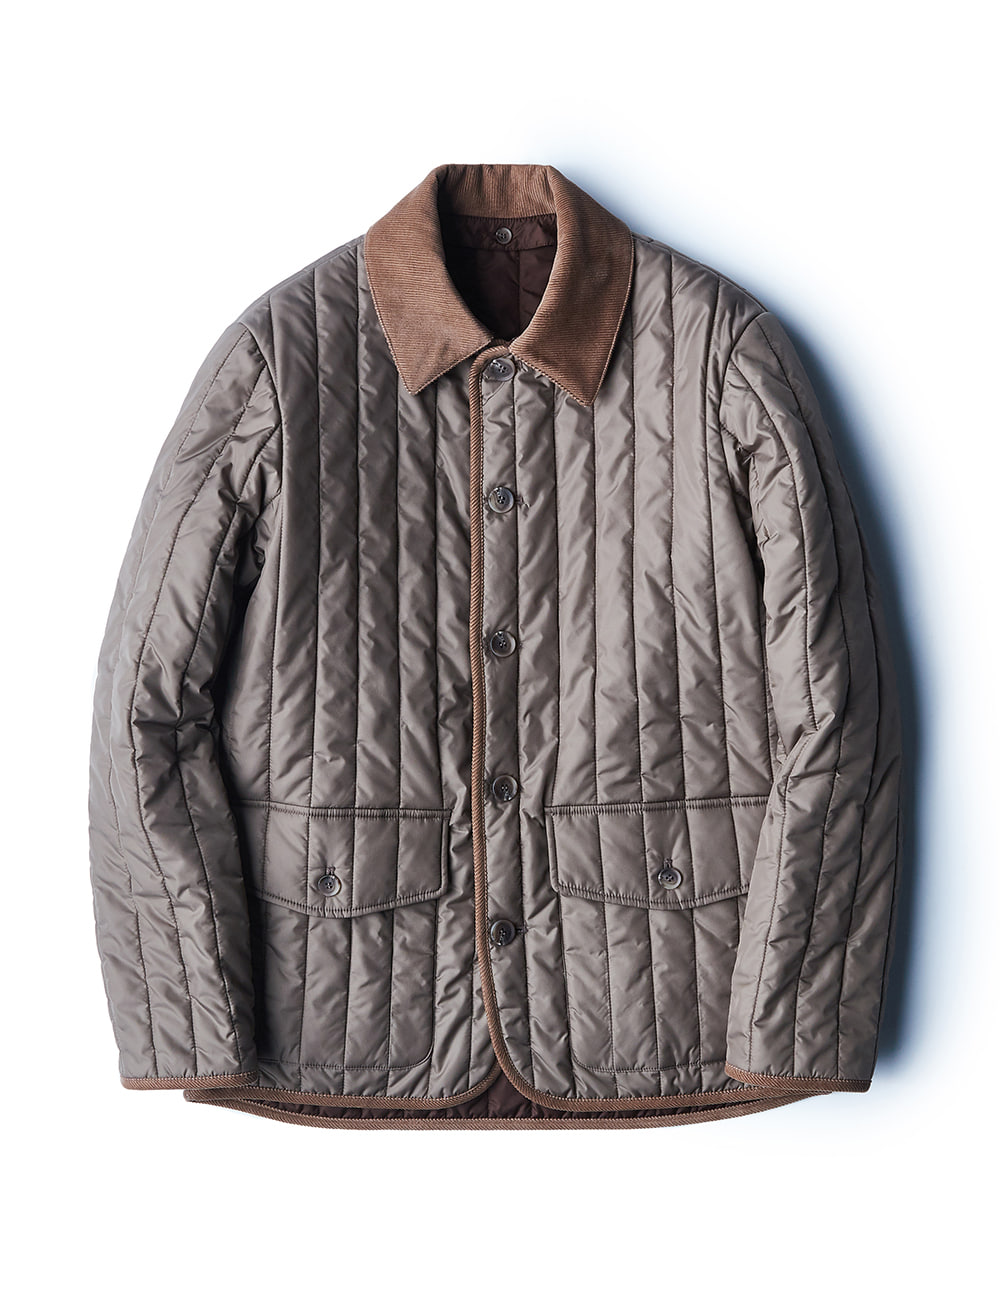 [ESFAI] fd09 Quilted Jacket (Beige)